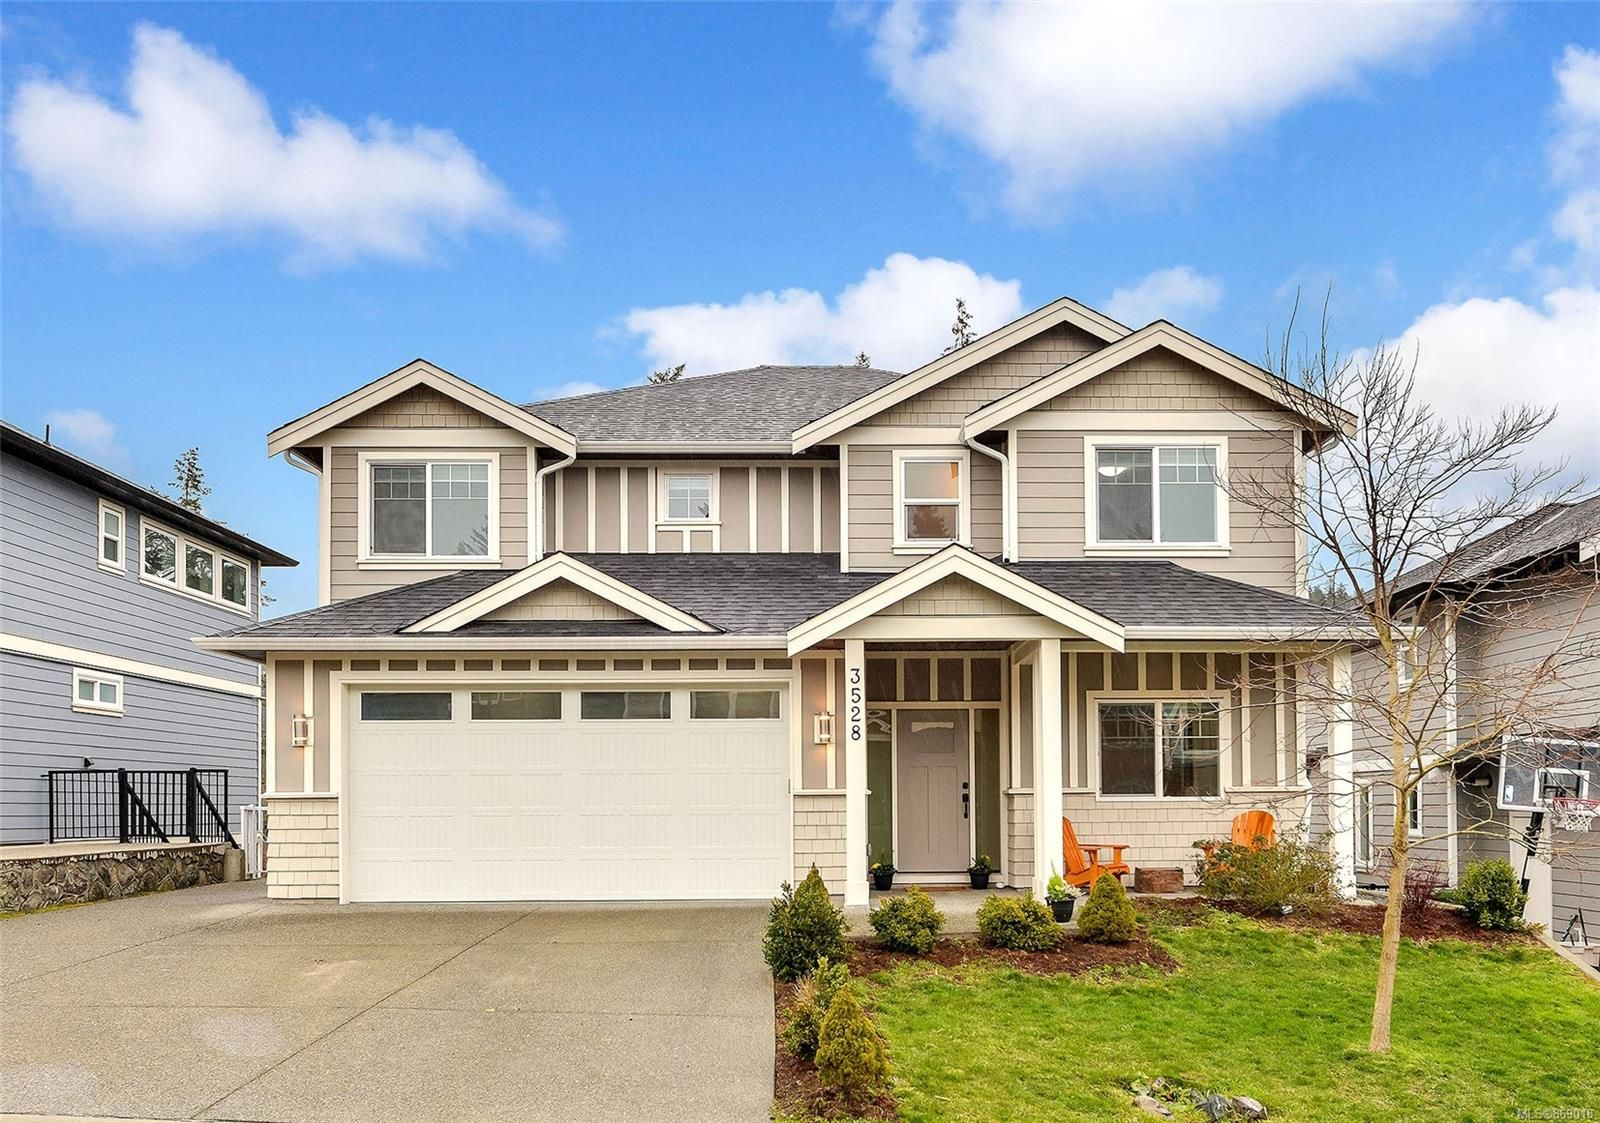 Main Photo: 3528 Joy Close in : La Olympic View House for sale (Langford)  : MLS®# 869018